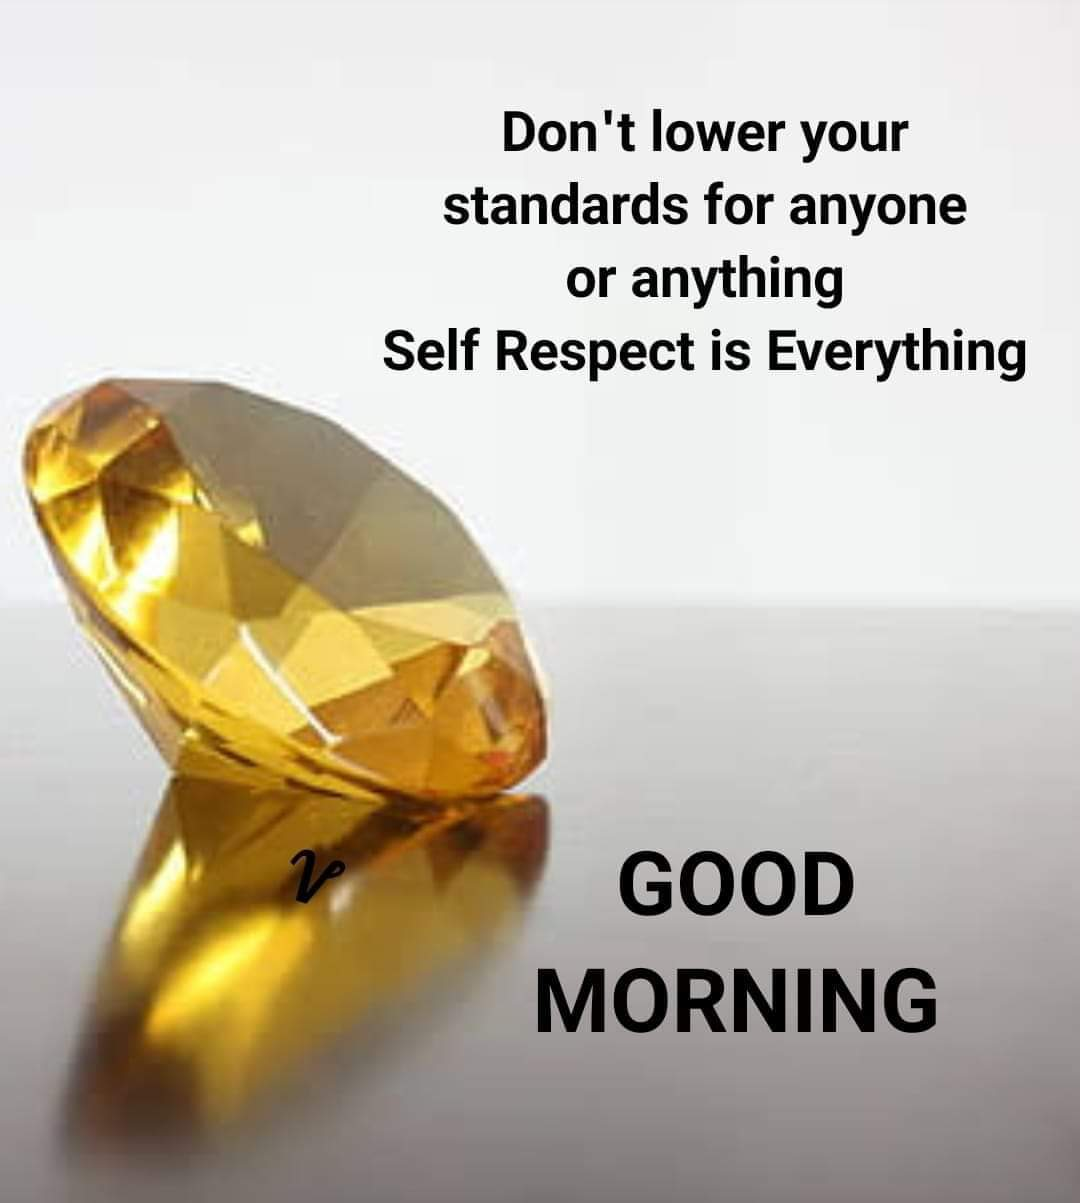 🌞 Good Morning🌞 - Don ' t lower your standards for anyone or anything Self Respect is Everything GOOD MORNING - ShareChat